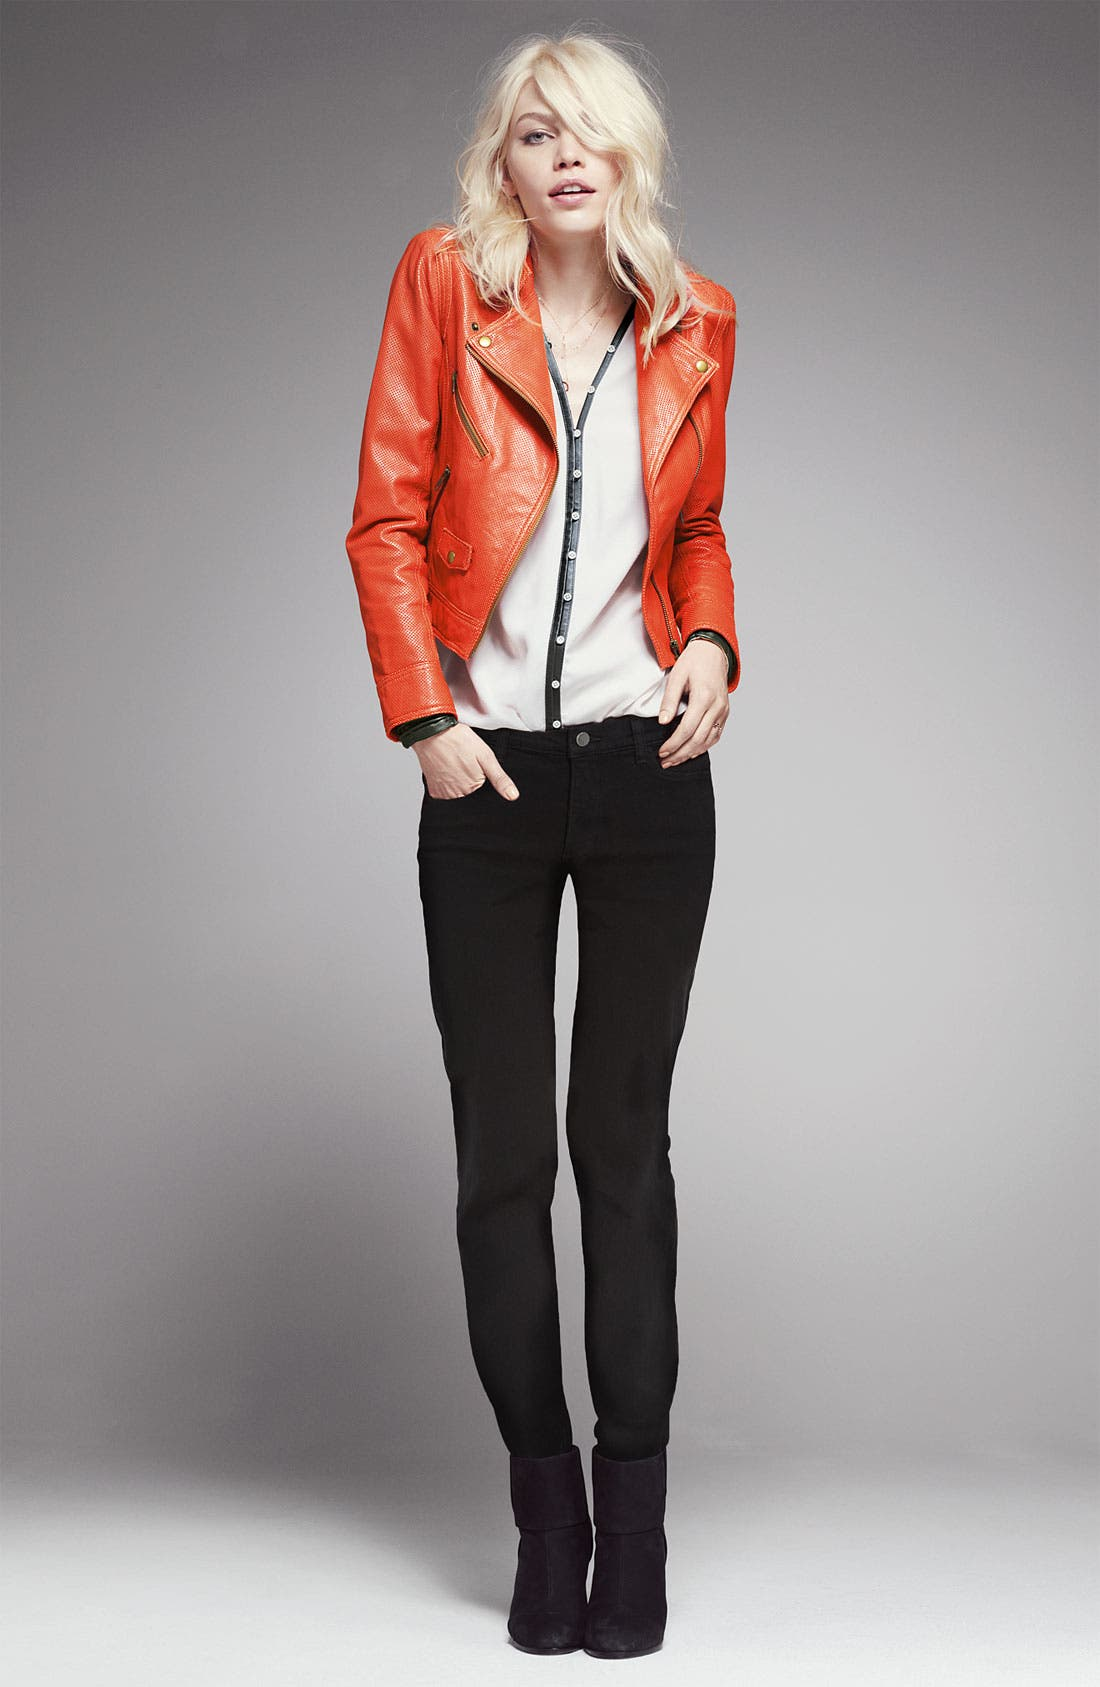 Main Image - Truth & Pride Jacket, Elizabeth and James Blouse & Paige Pants